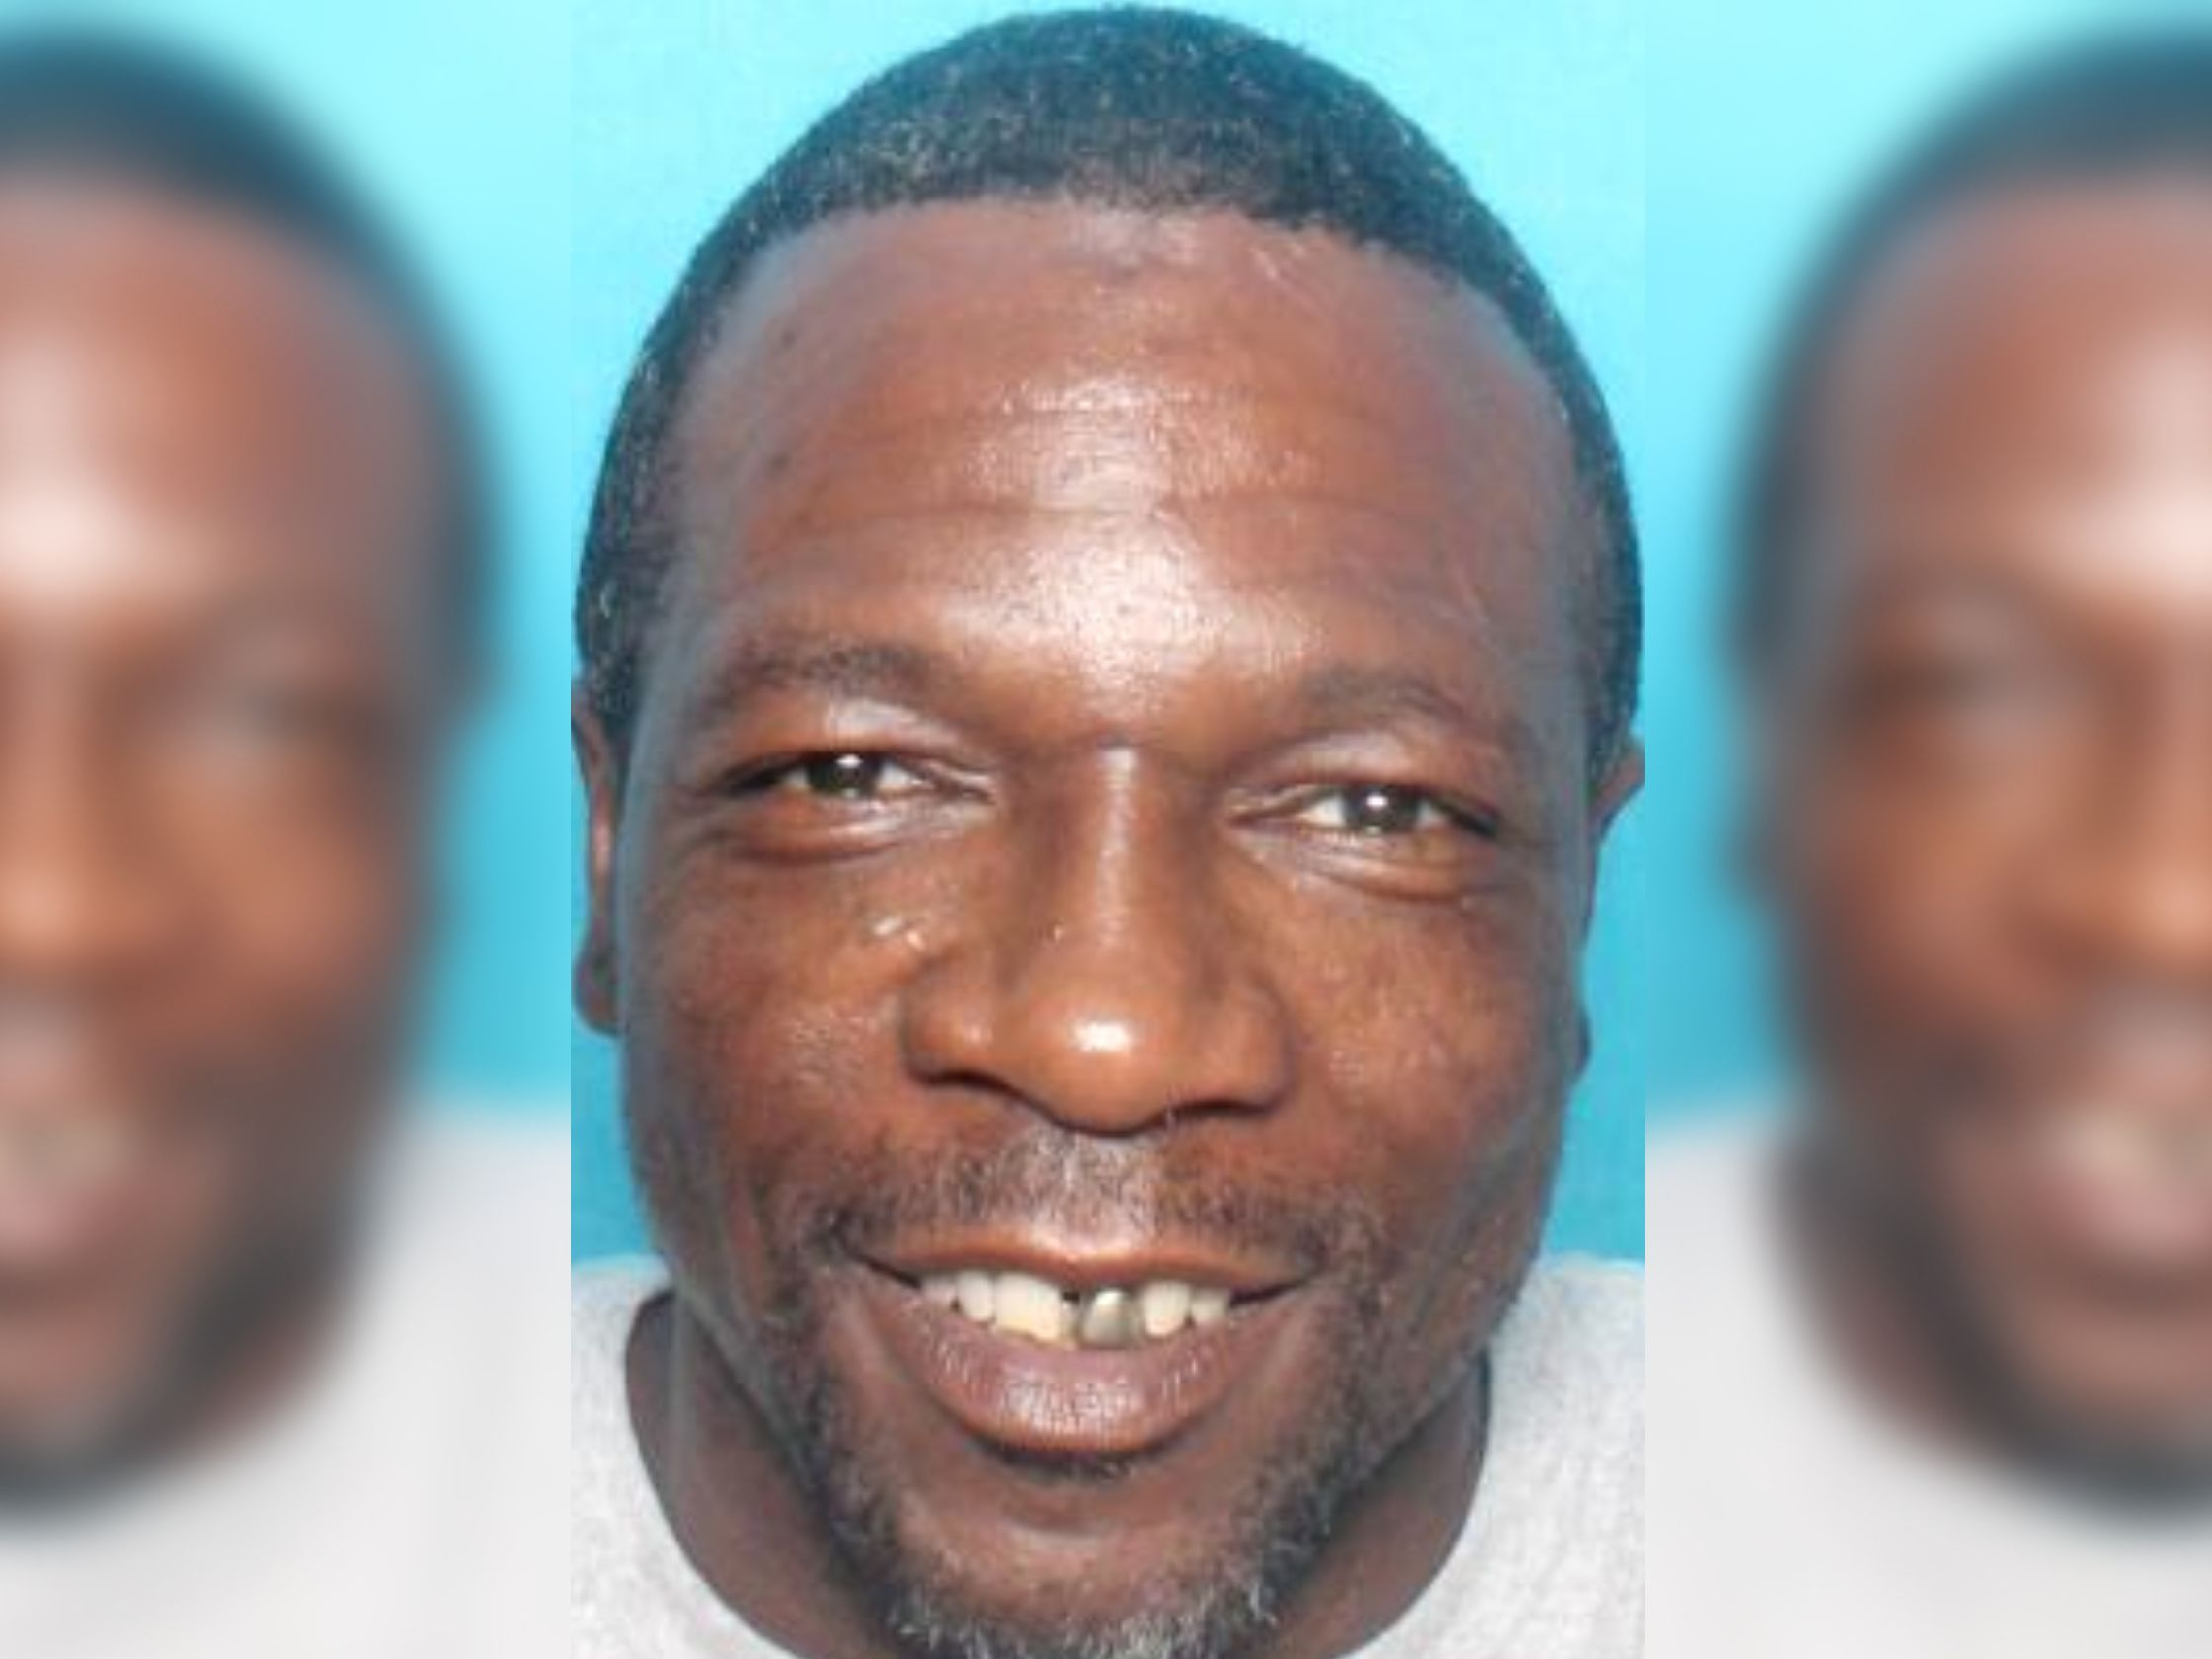 Police seek help finding Shreveporter who went missing 10 days ago